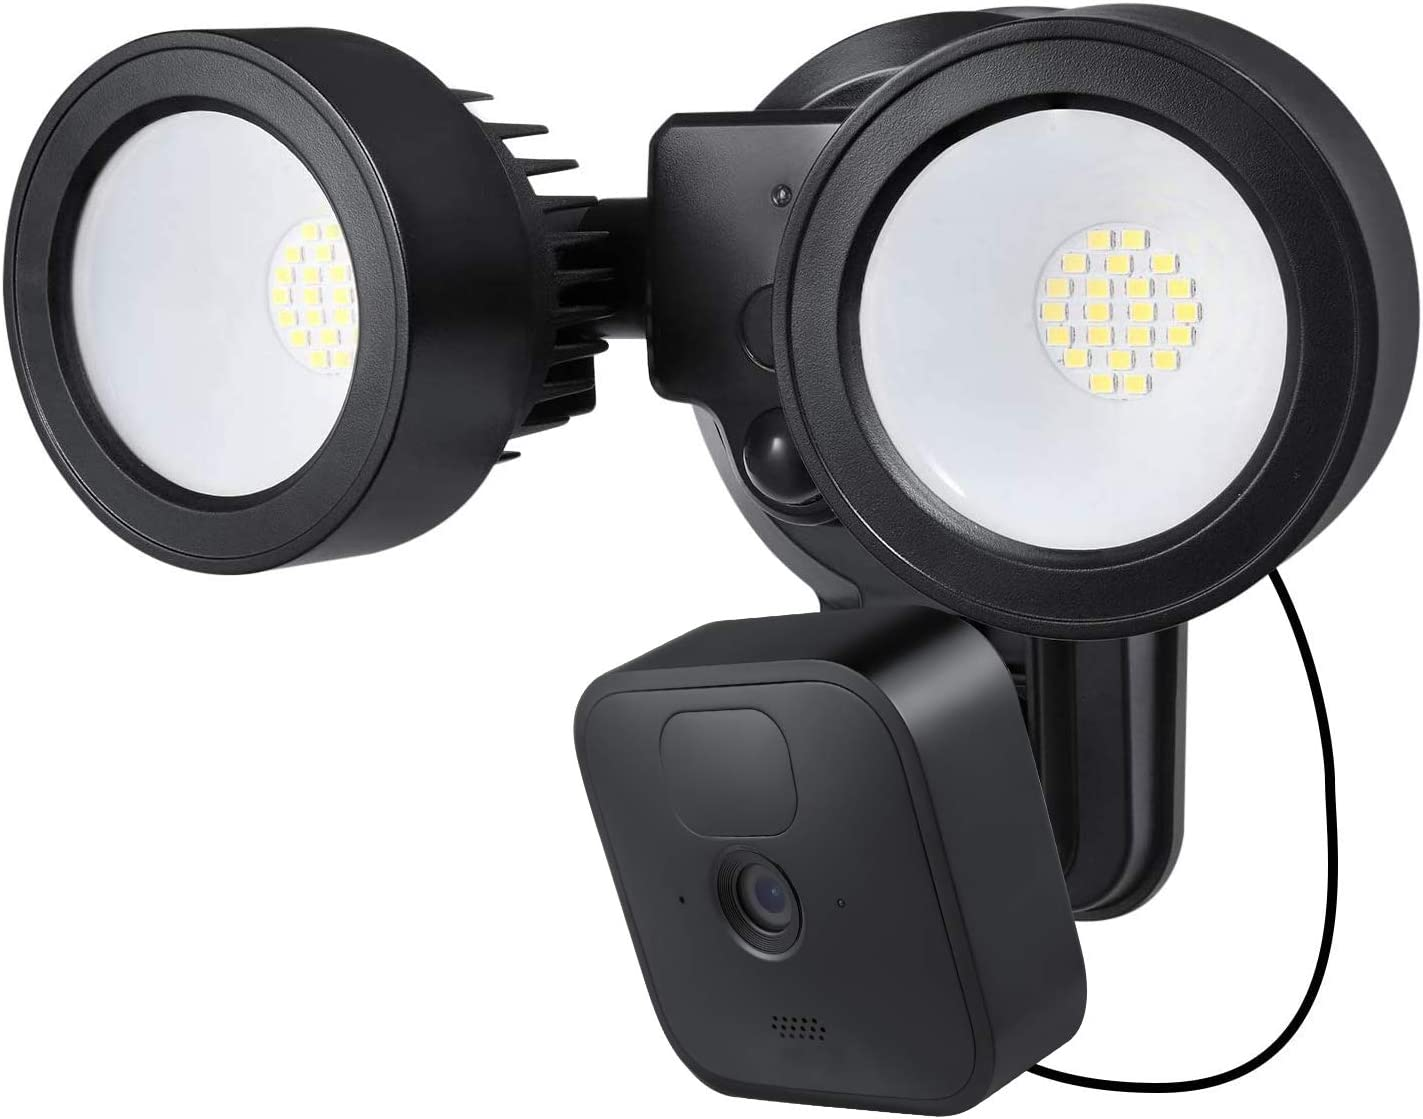 Wasserstein 3-in-1 Floodlight, Charger and Mount Compatible with Blink Outdoor & Blink XT2/XT Camera - Turn Your Blink Camera into a Powerful Floodlight (Black) (Blink Camera NOT Included)